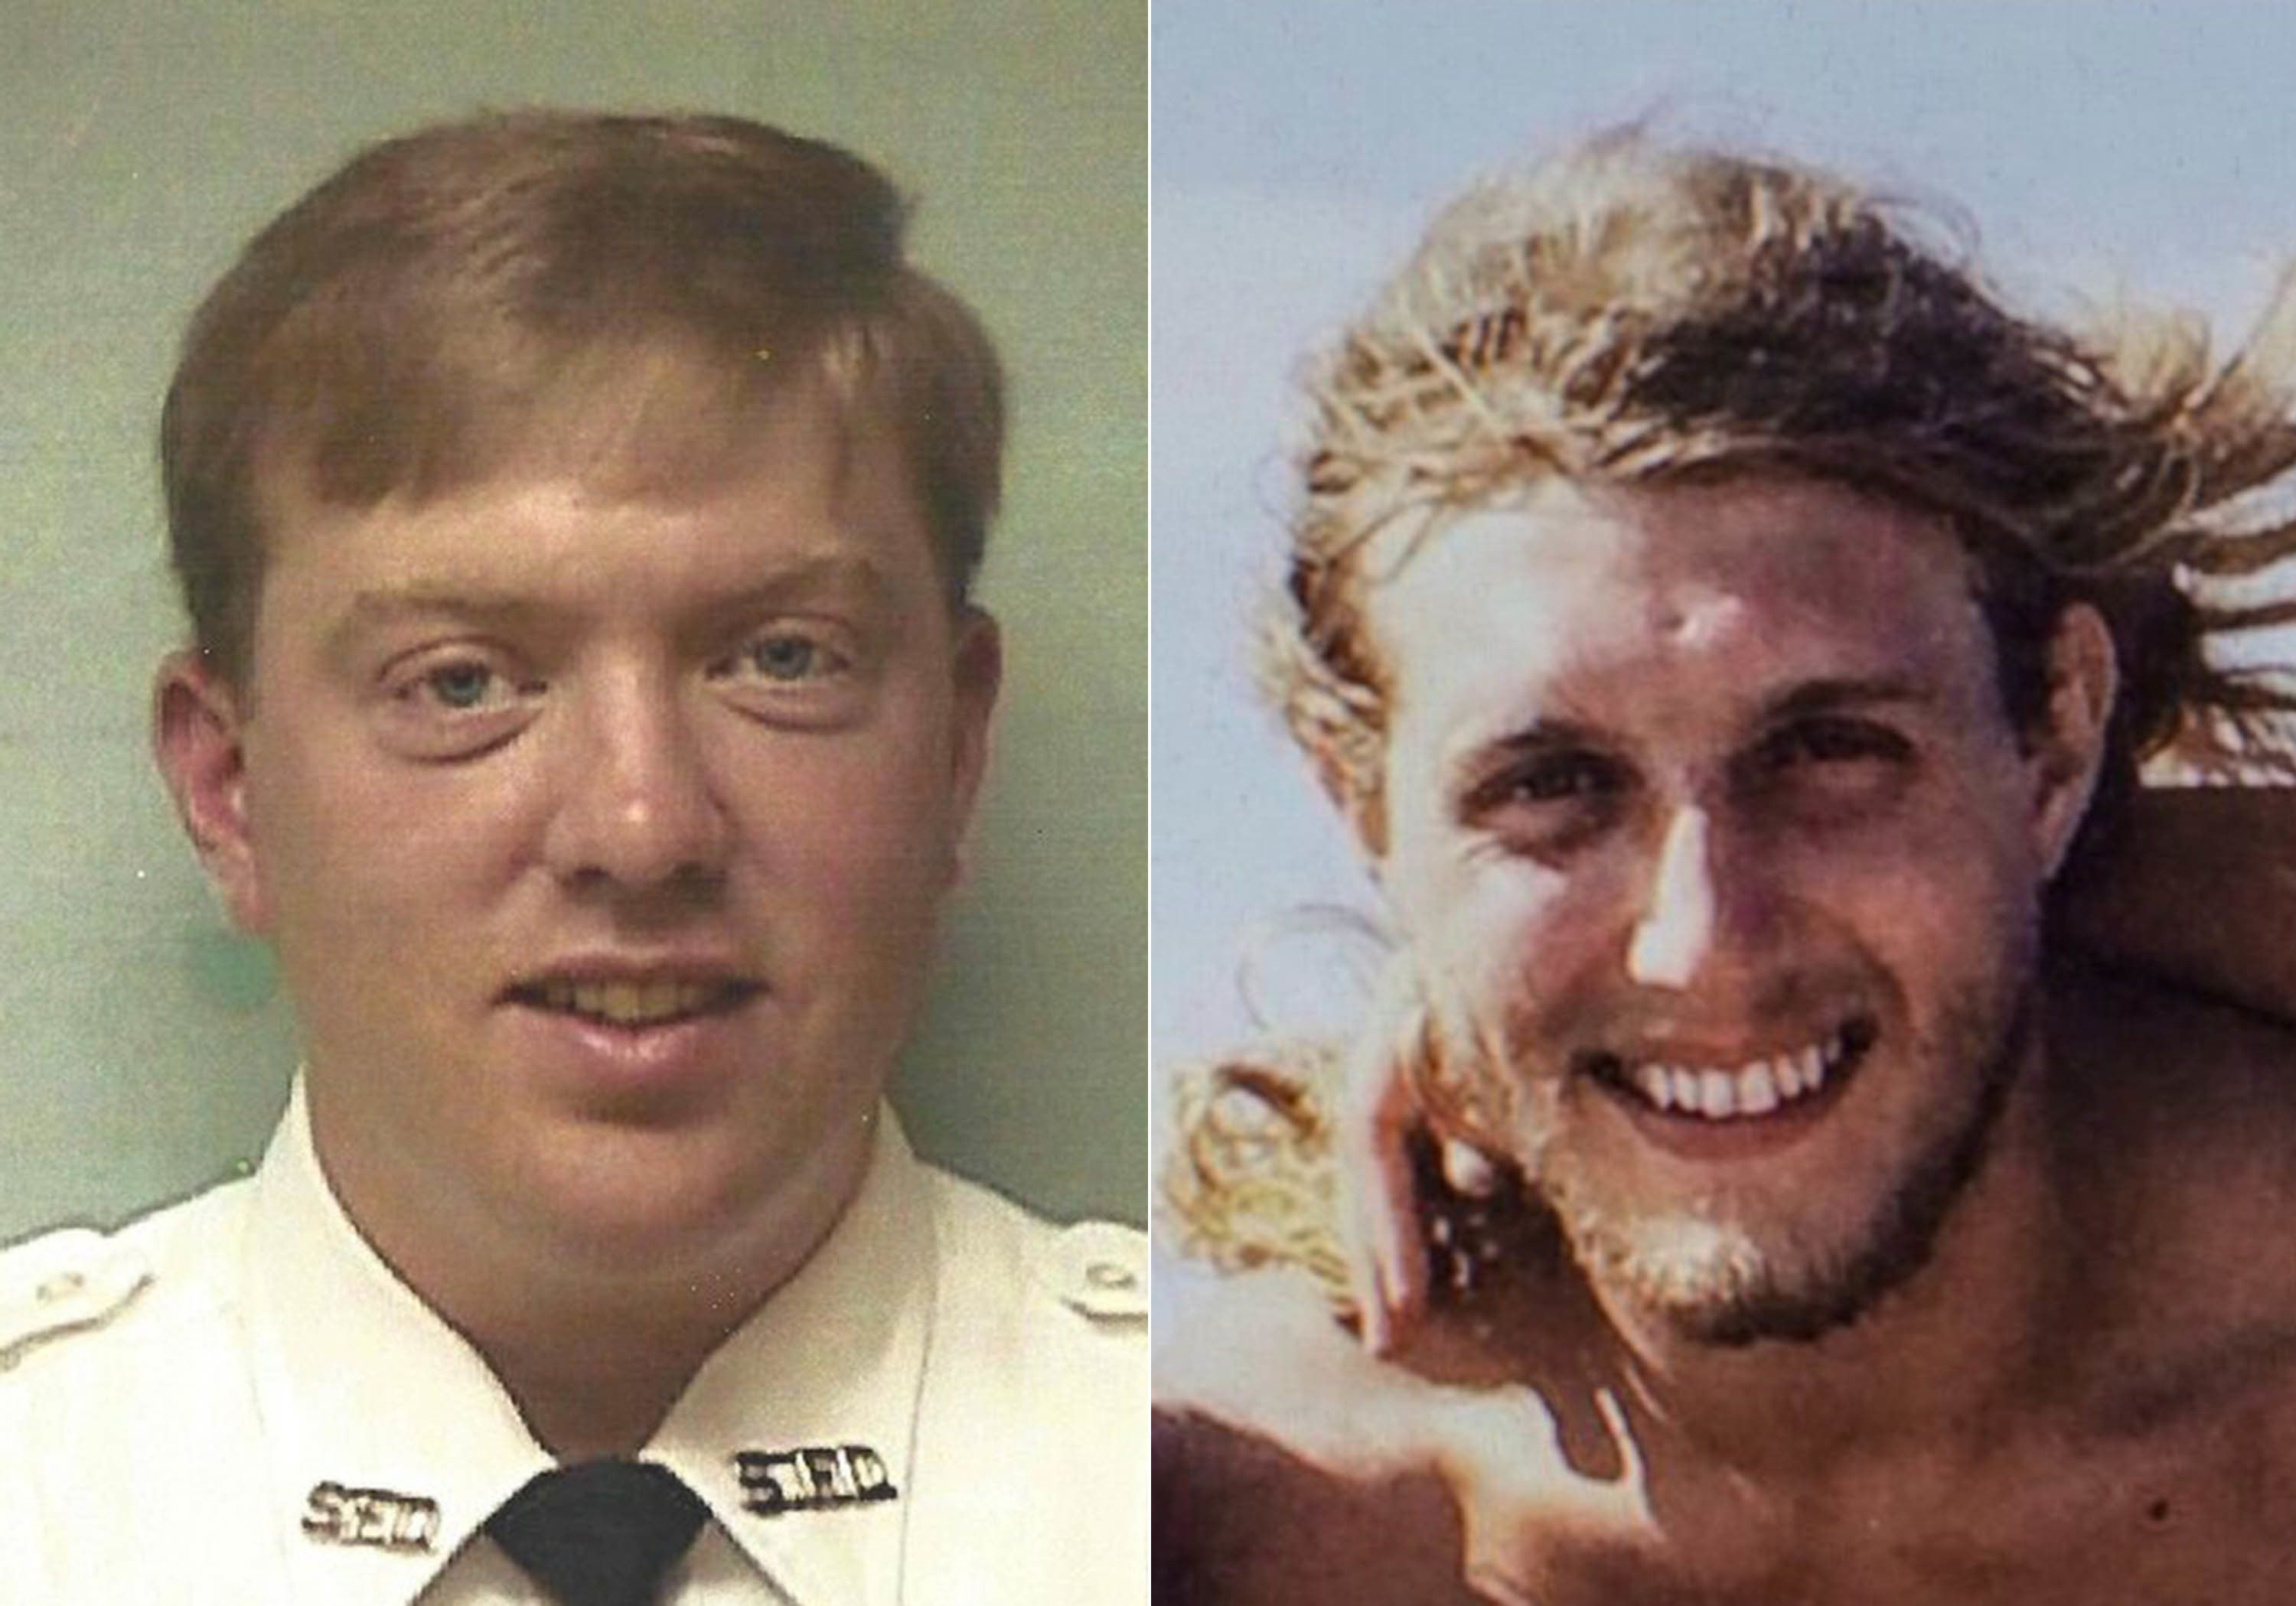 Hardison (left) in uniform before his injury (left) and a snapshot of David Rodebaugh, the face